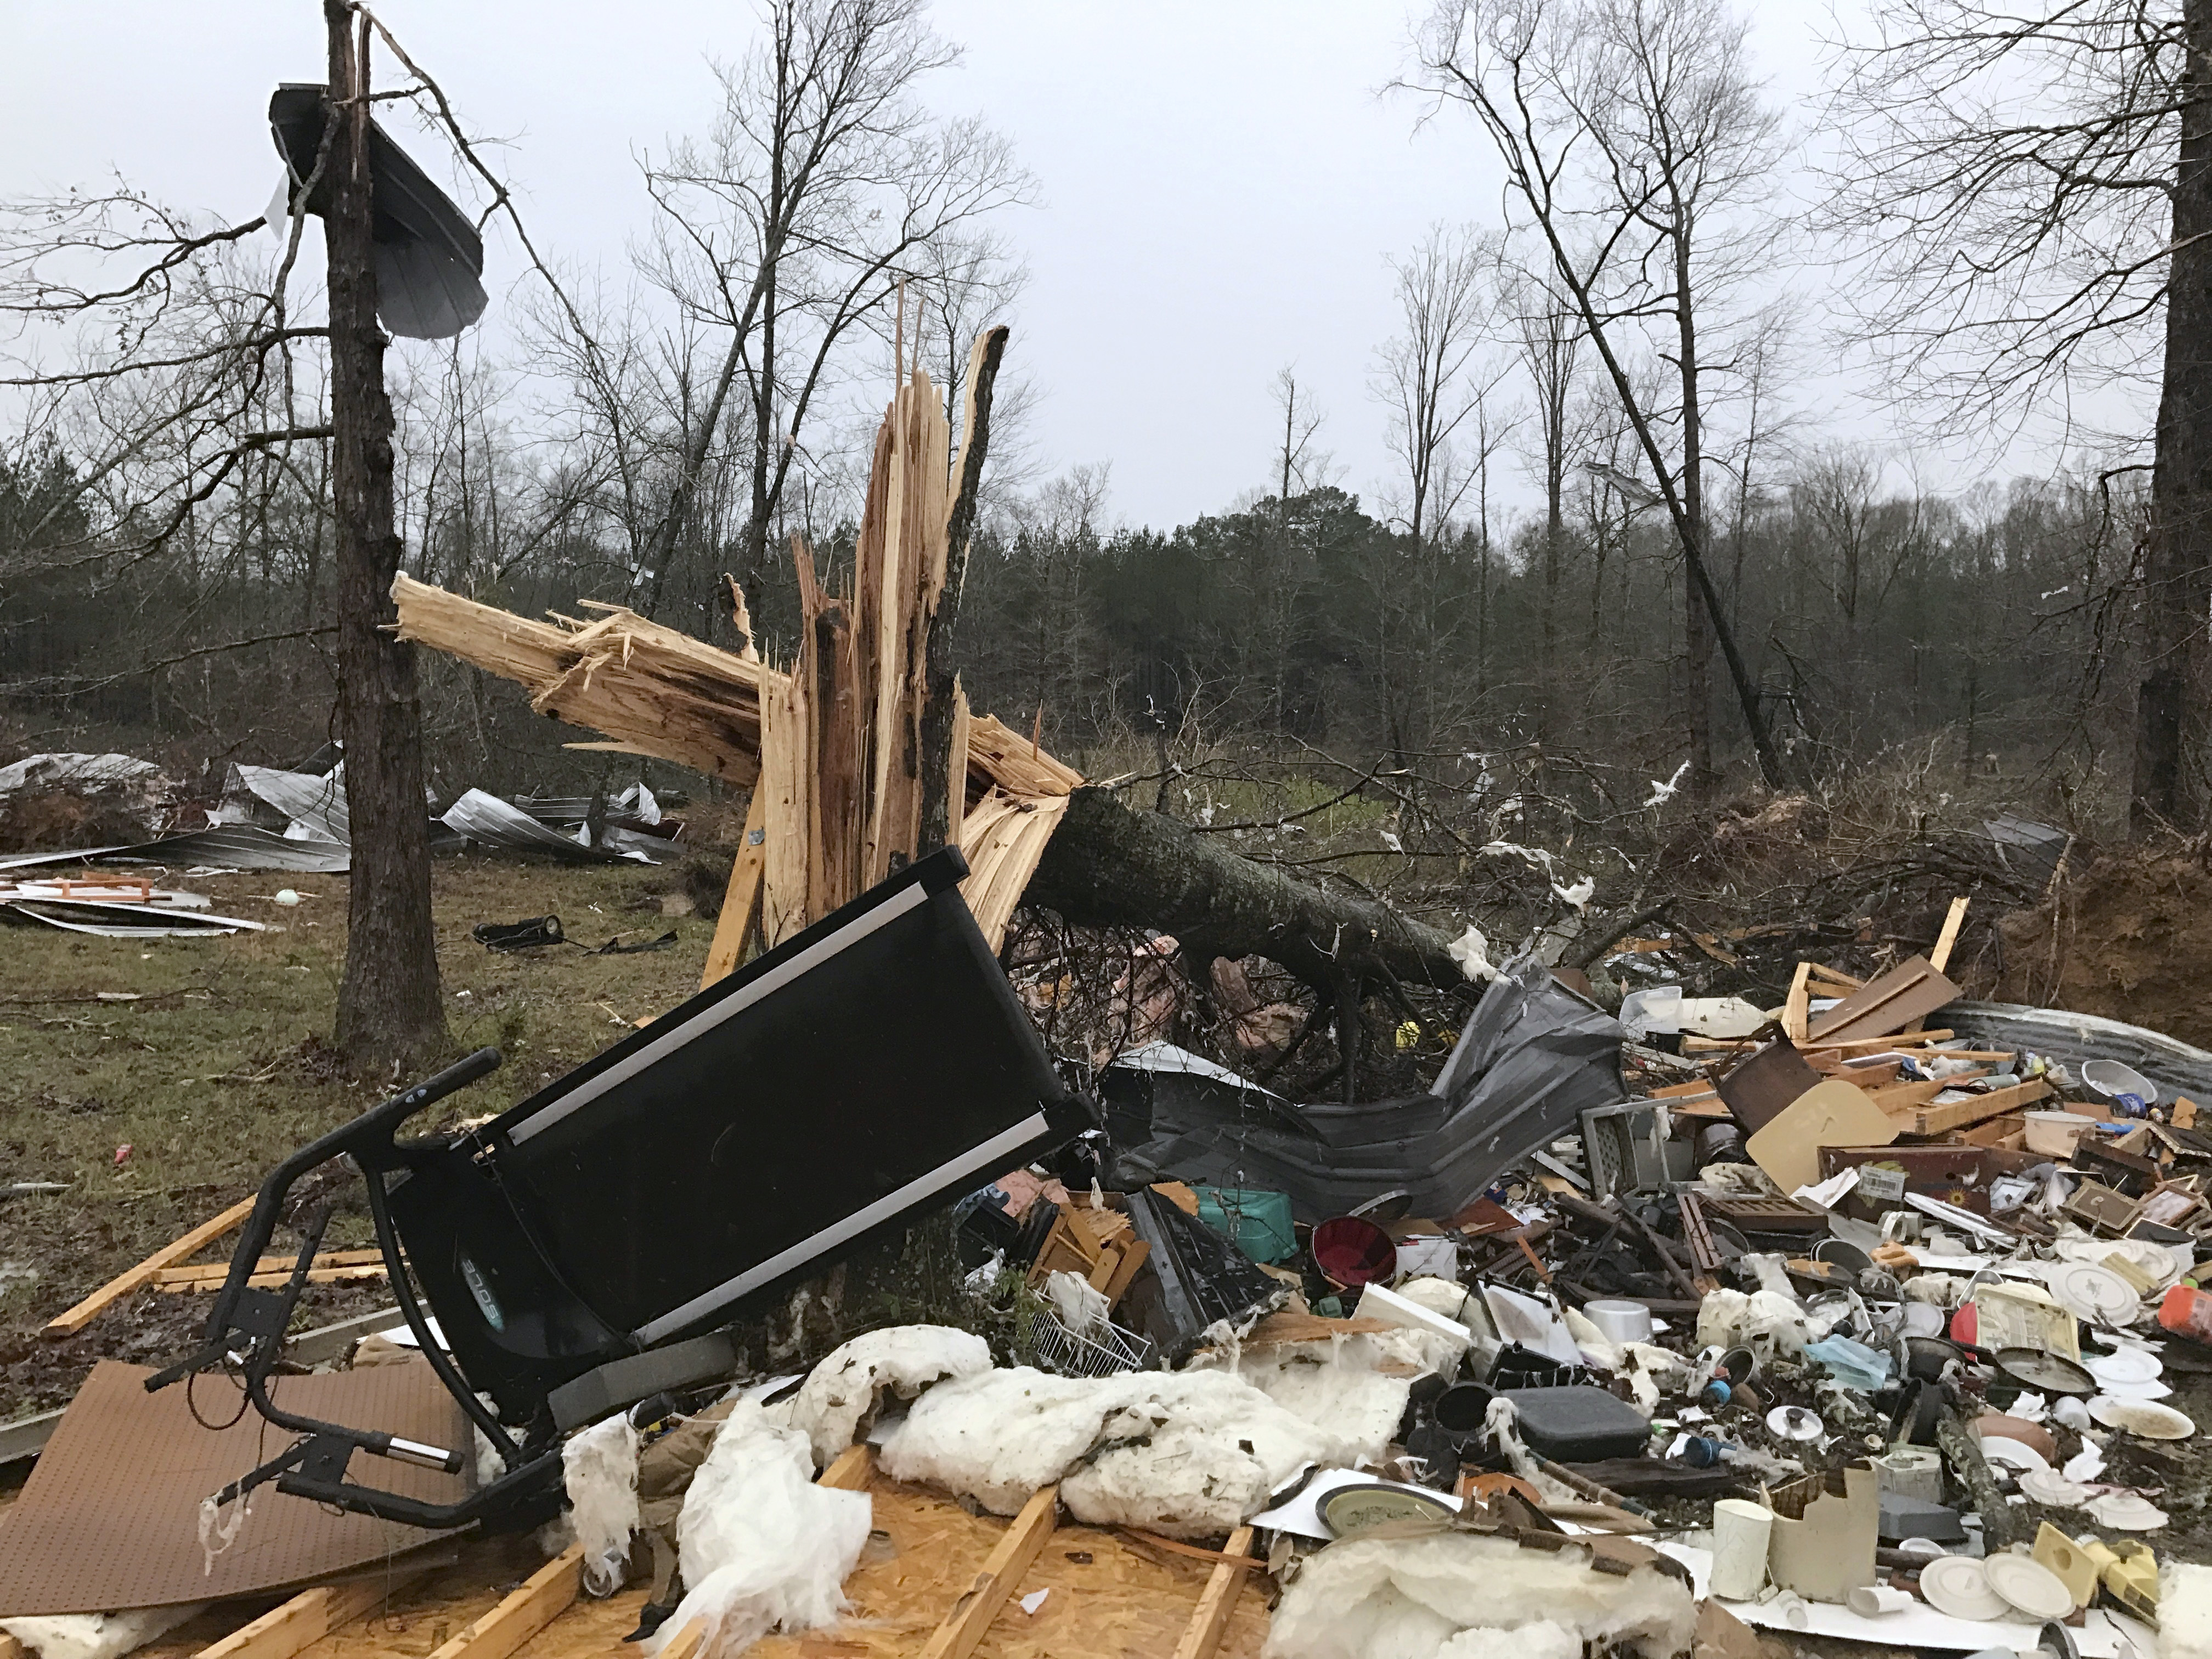 Debris lies on the ground after a storm south of Mount Olive, Miss., moved through on Jan. 2, 2017. (Ryan Moore/WDAM-TV via AP)